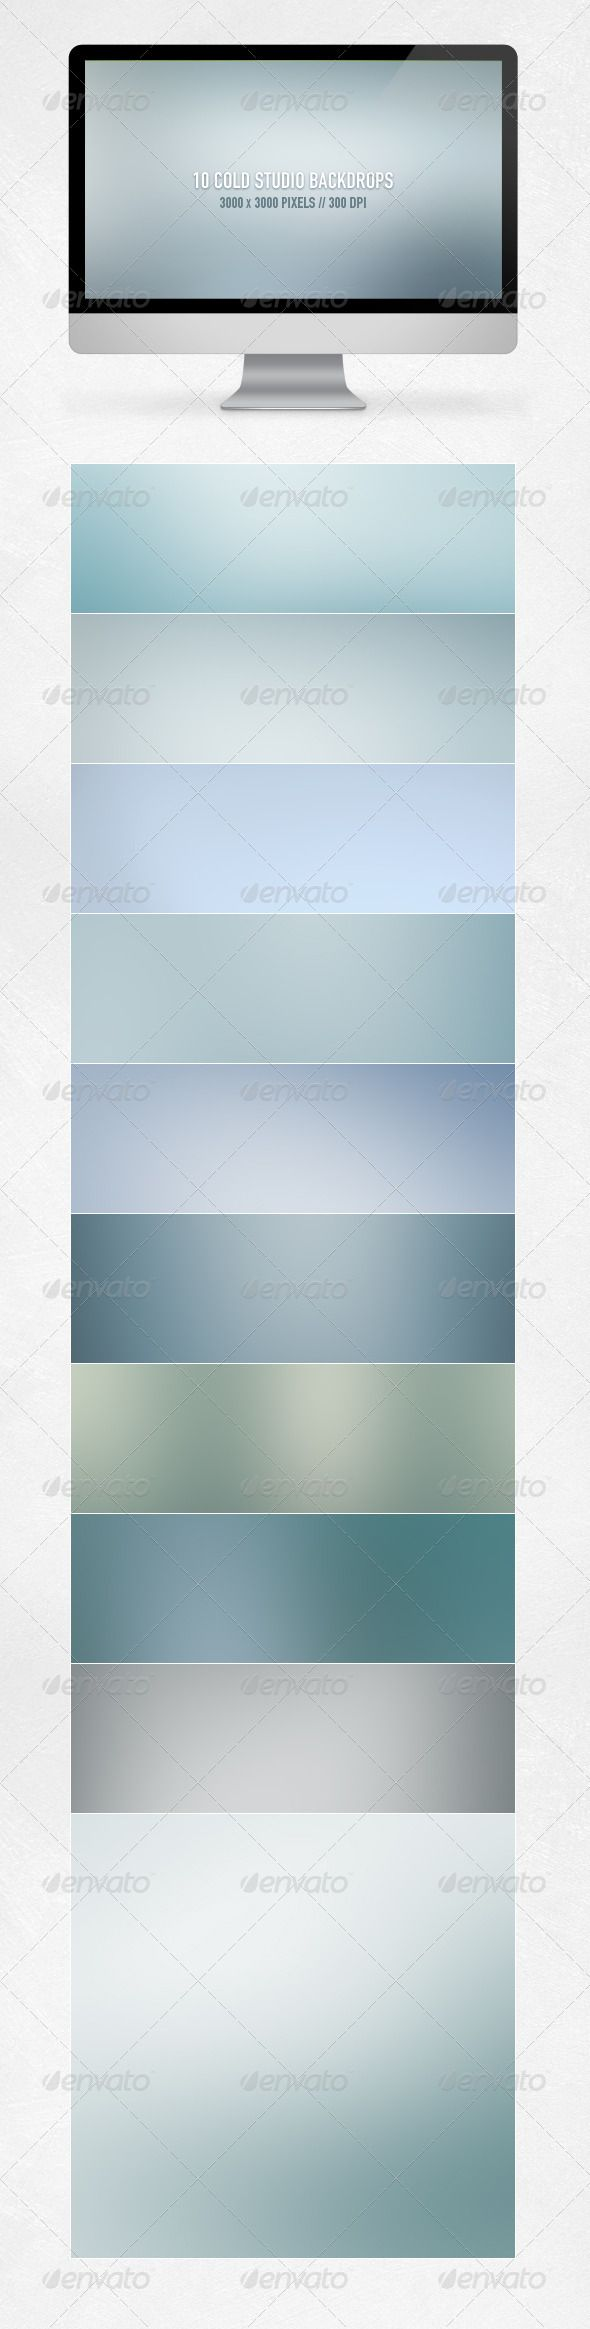 Cold Studio Backdrops  #GraphicRiver        About the Cold Studio Backdrops  Save money and time with these high resolution blurred backdrops, great for both print and web! These elegant backgrounds are minimal and yet so effective for ui design, advertisement, websites, photography and more.   Very usefull as photo studio backgrounds, apps, user interfaces, wallpapers and more.   What do you get?   10 high resolution backgrounds on 300 DPI  Sizes: 3000×3000 pixels  High quality JPG files…